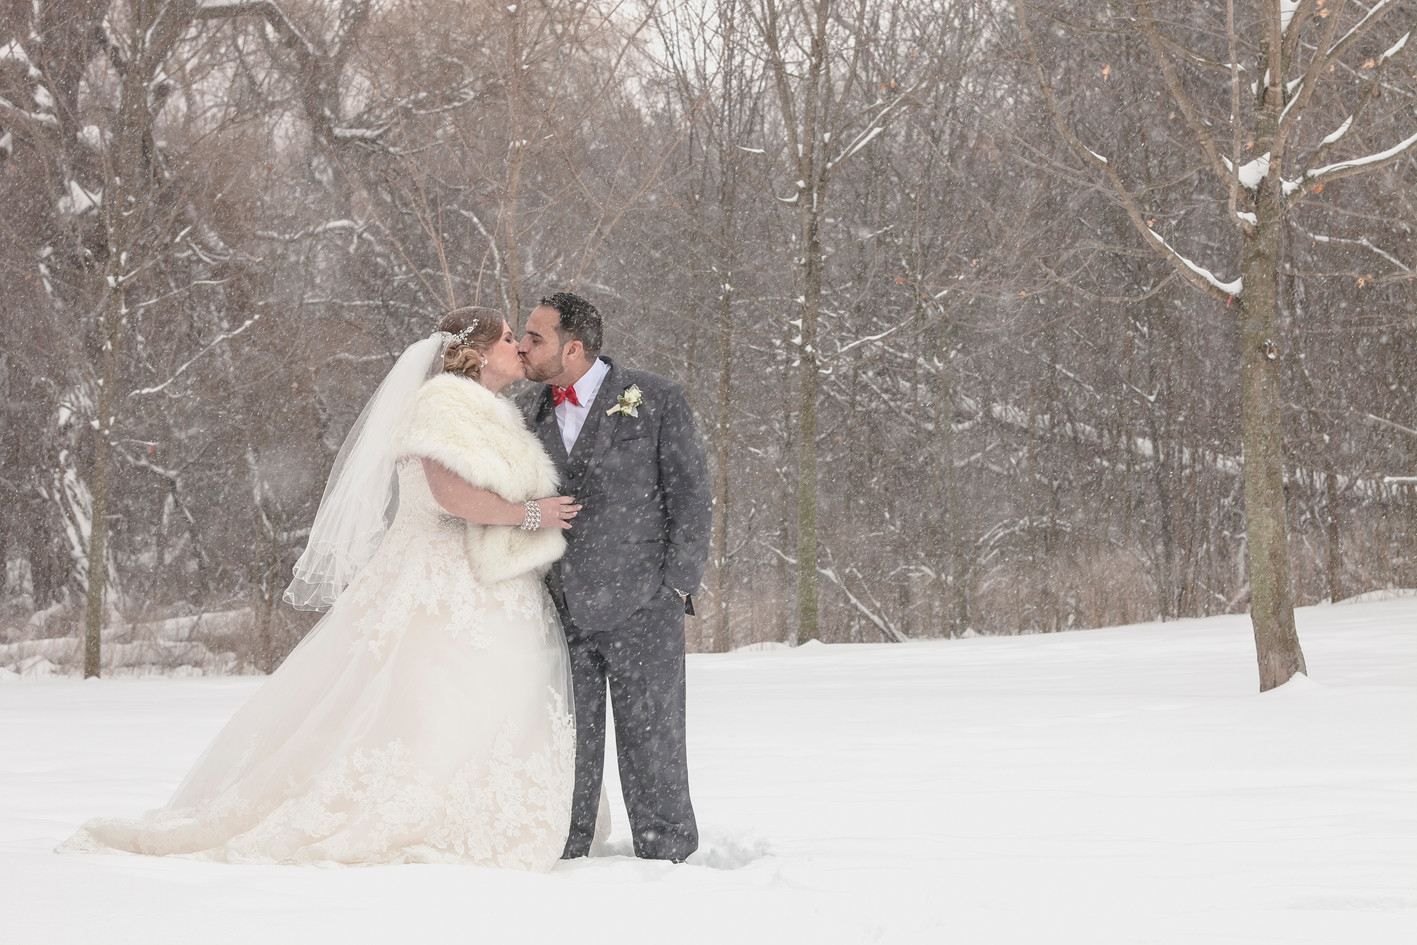 Winter wedding outside in the snow